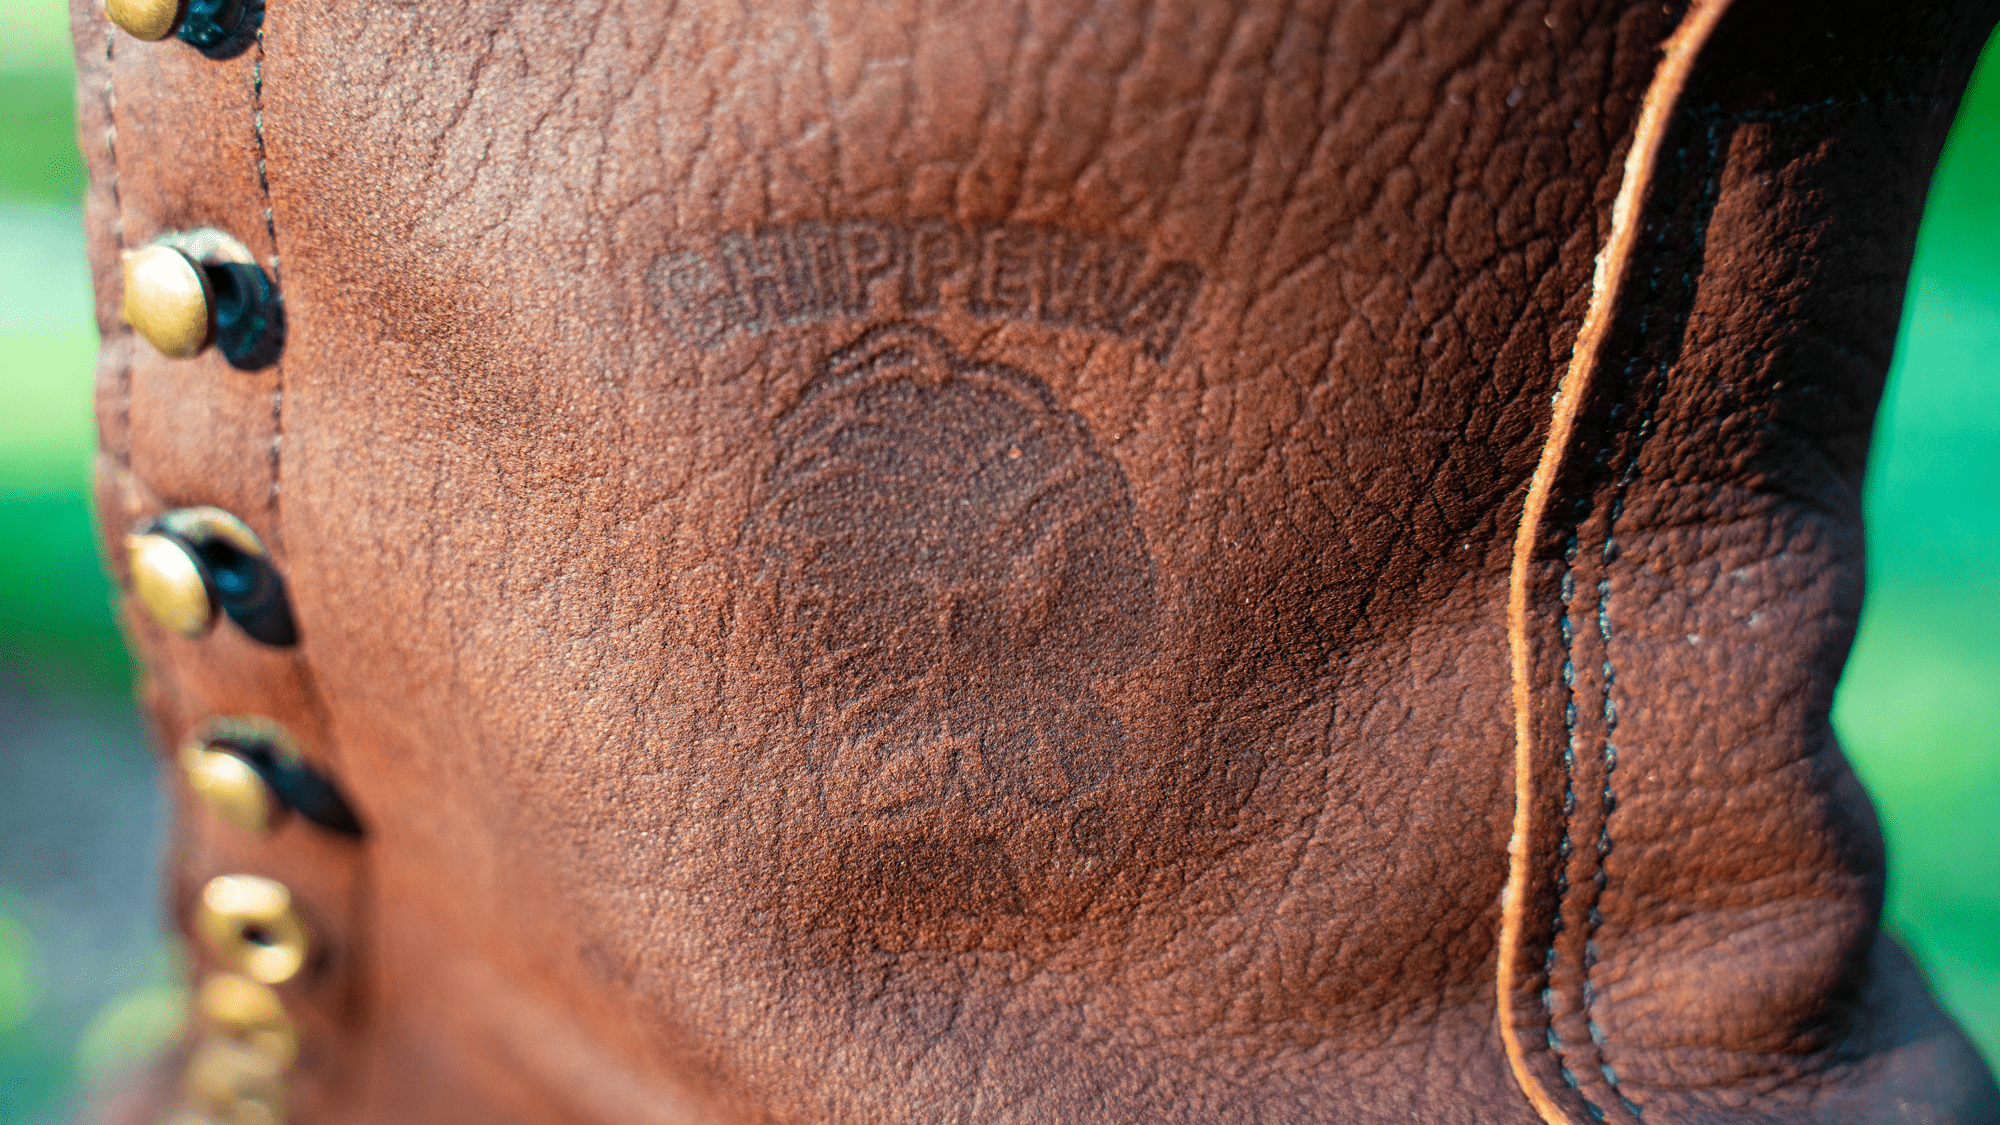 Chippewa Boots After Saddle Soap Cleaning